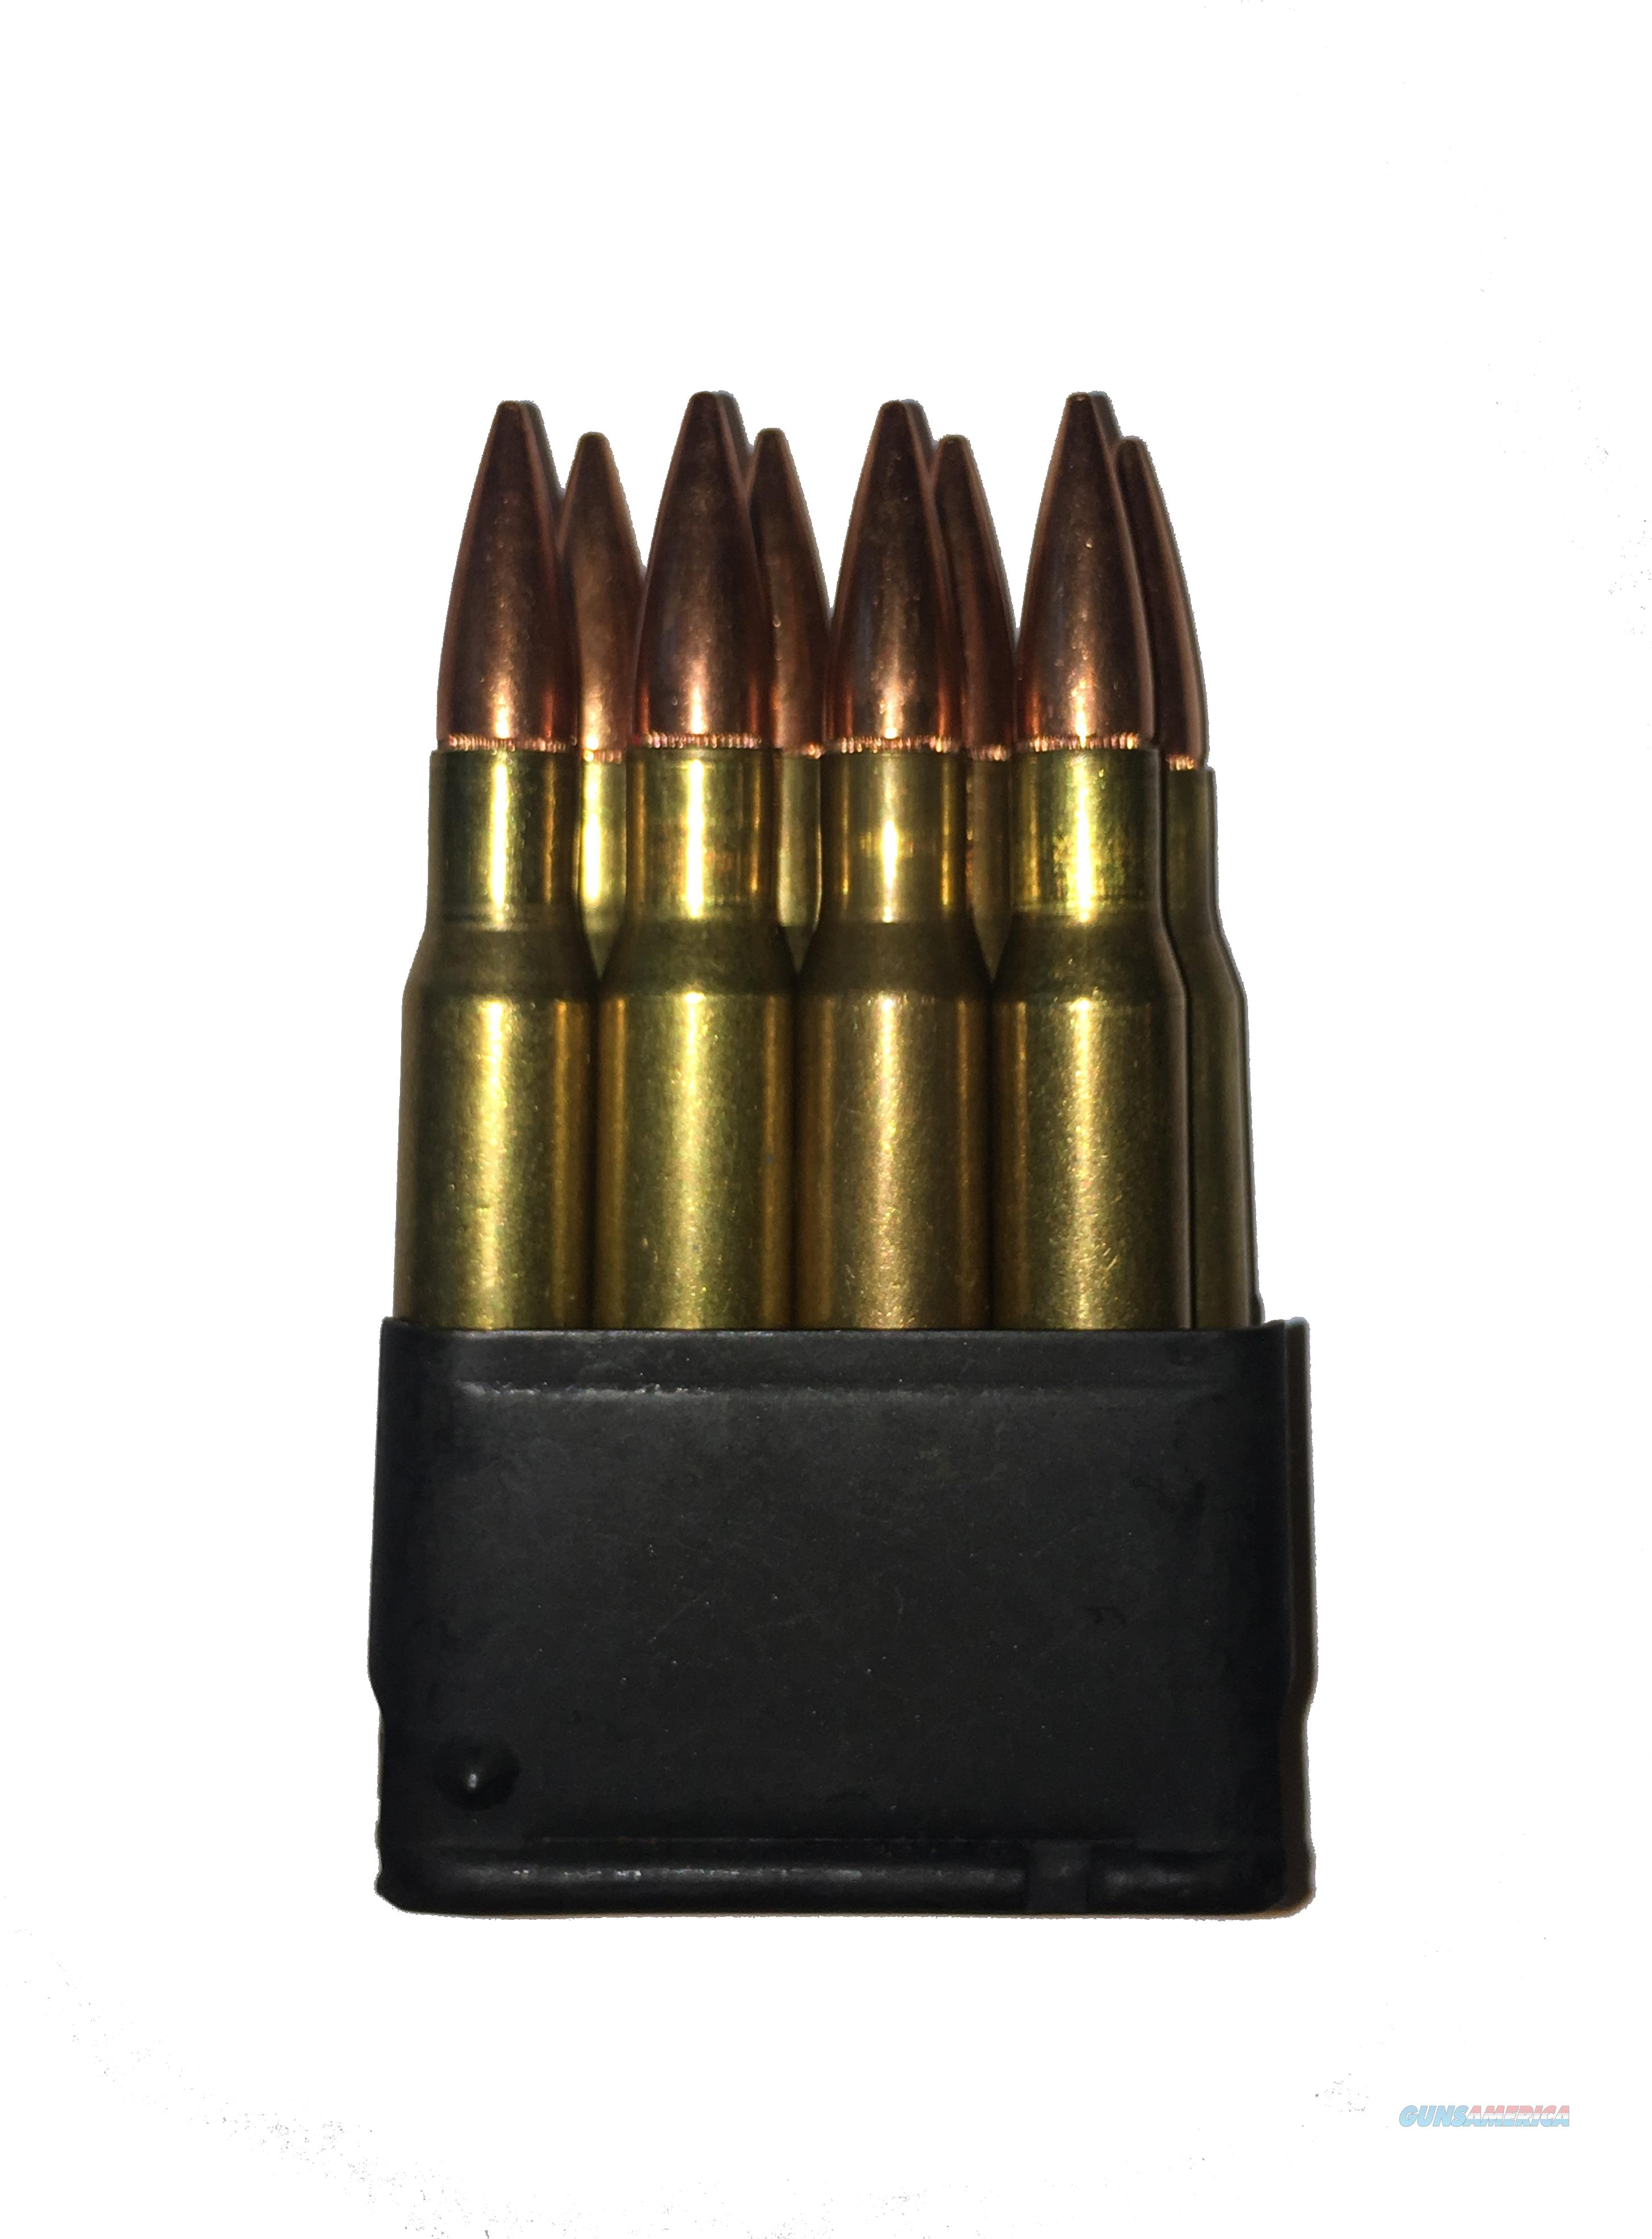 30-06 Dummy Rounds in M1 Garand Enbloc  Non-Guns > Ammunition